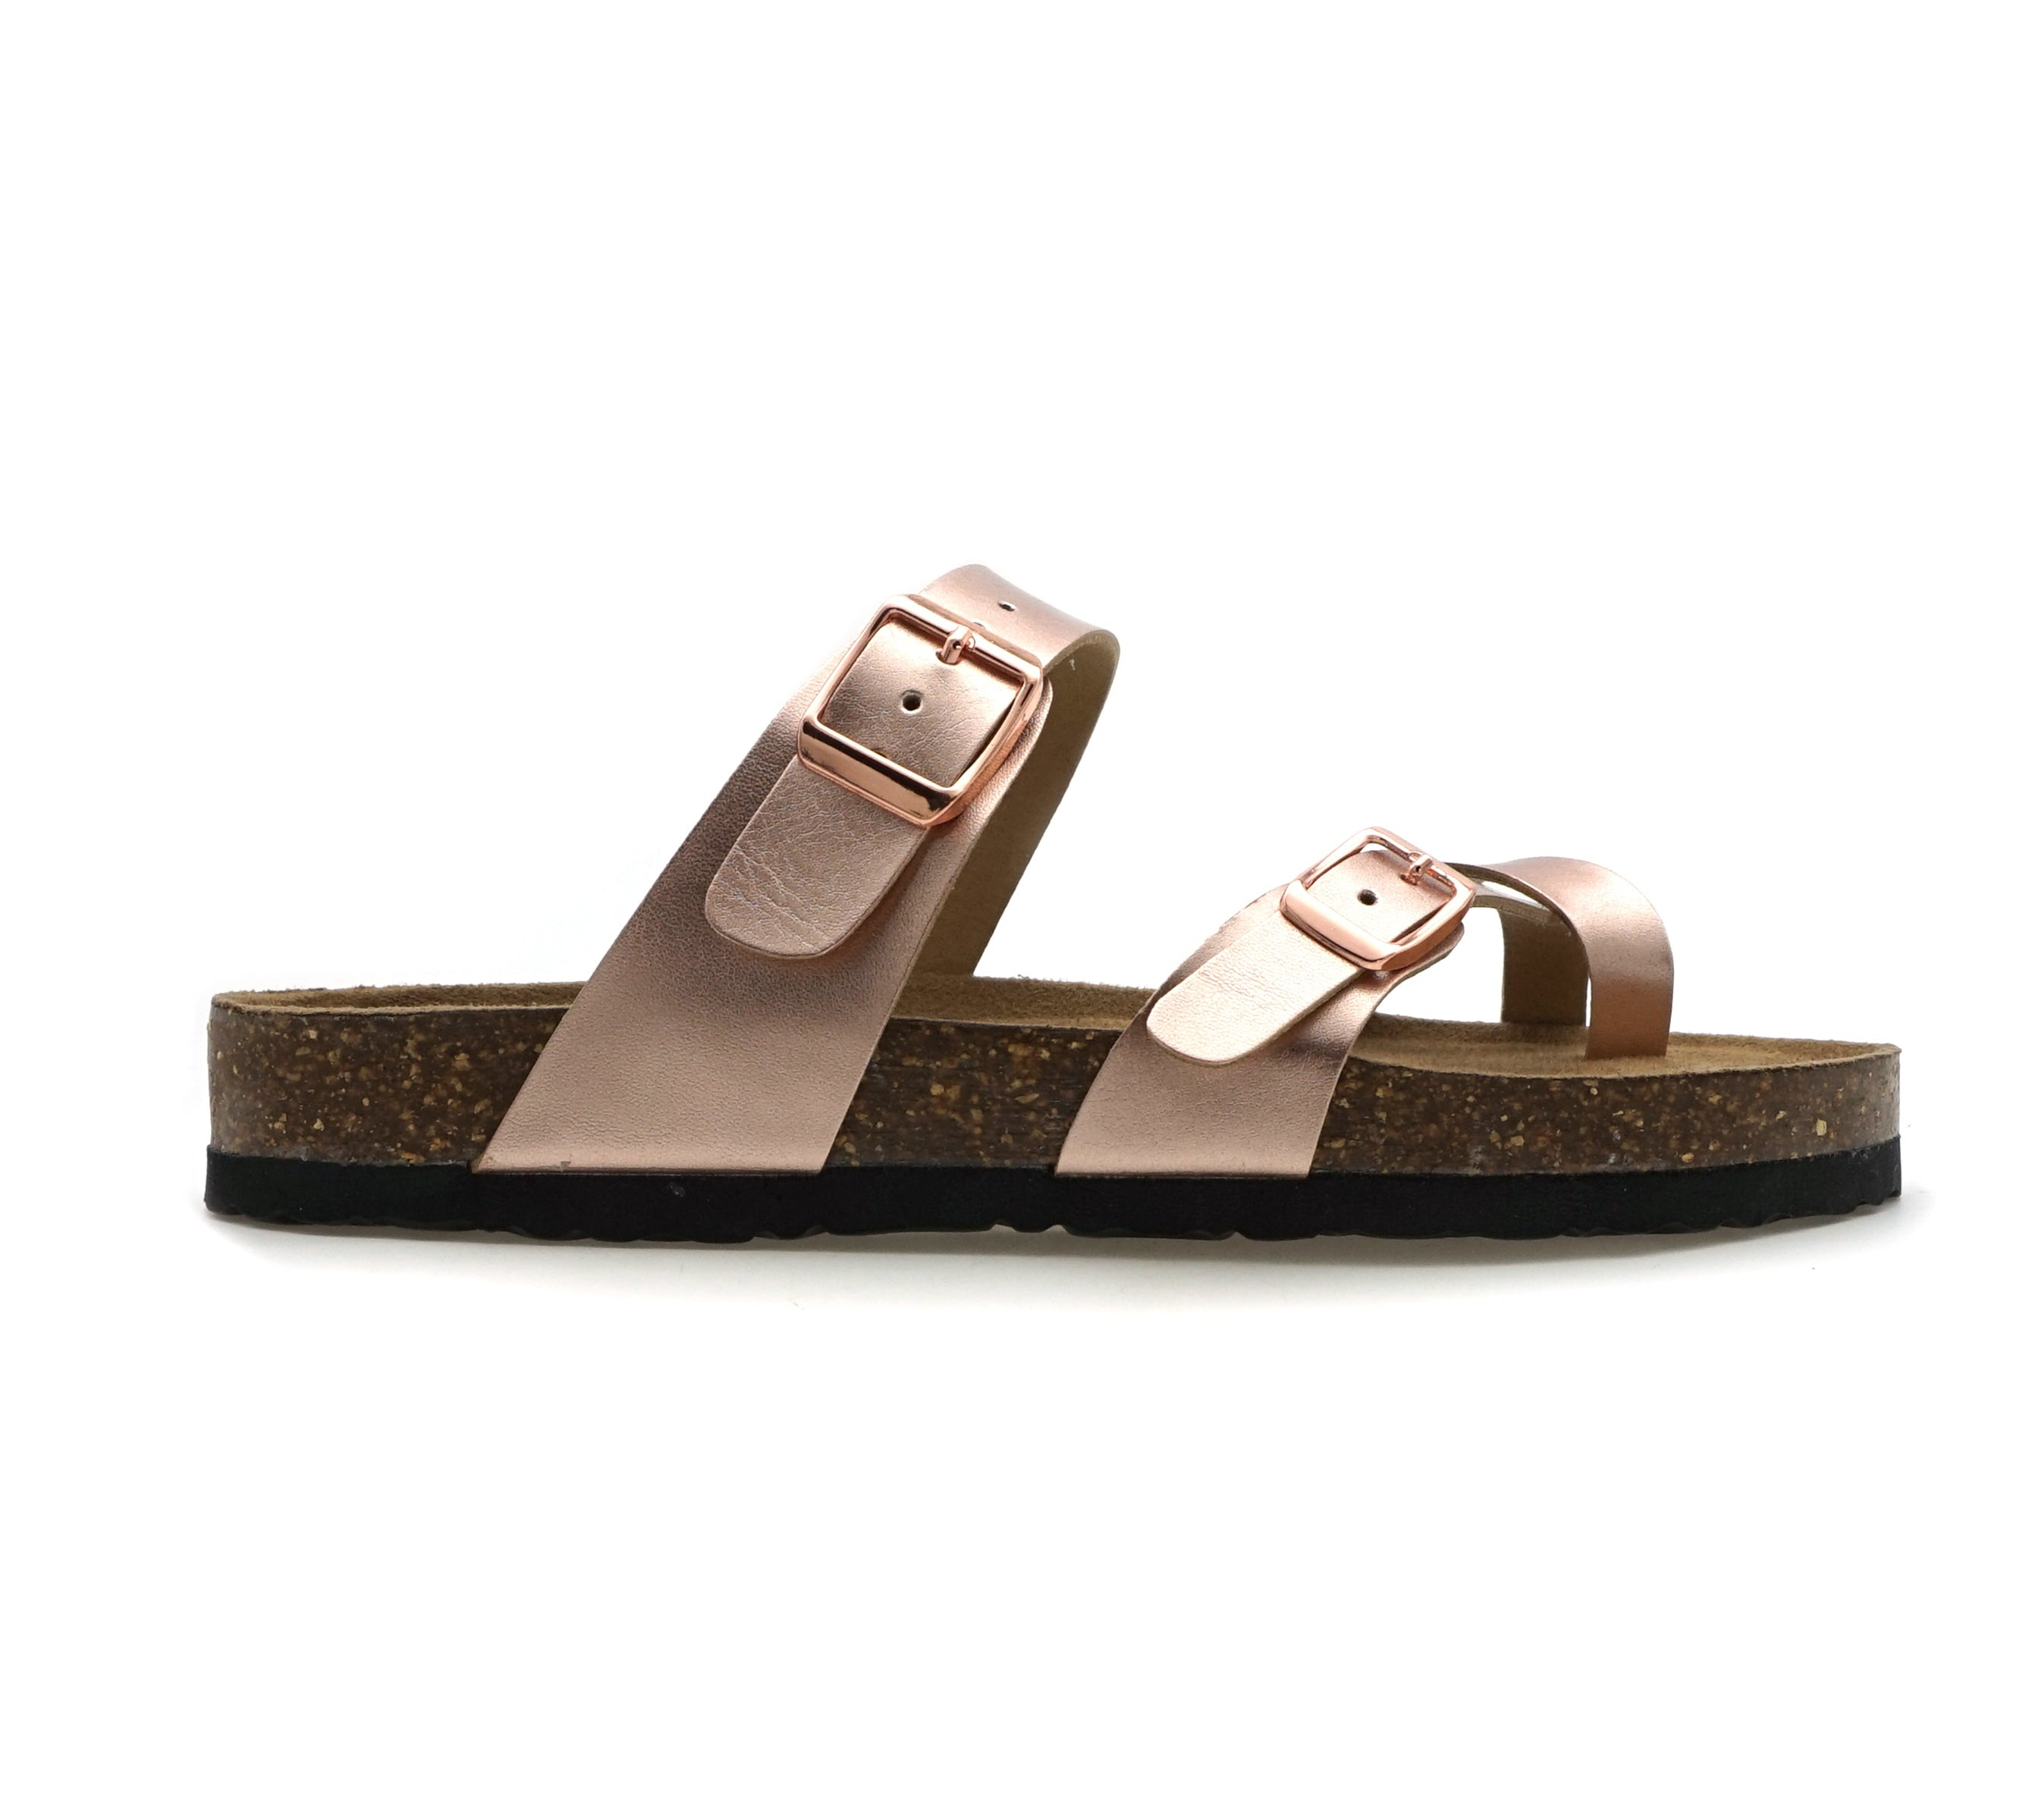 Bork 30 Sandal in Rose Gold